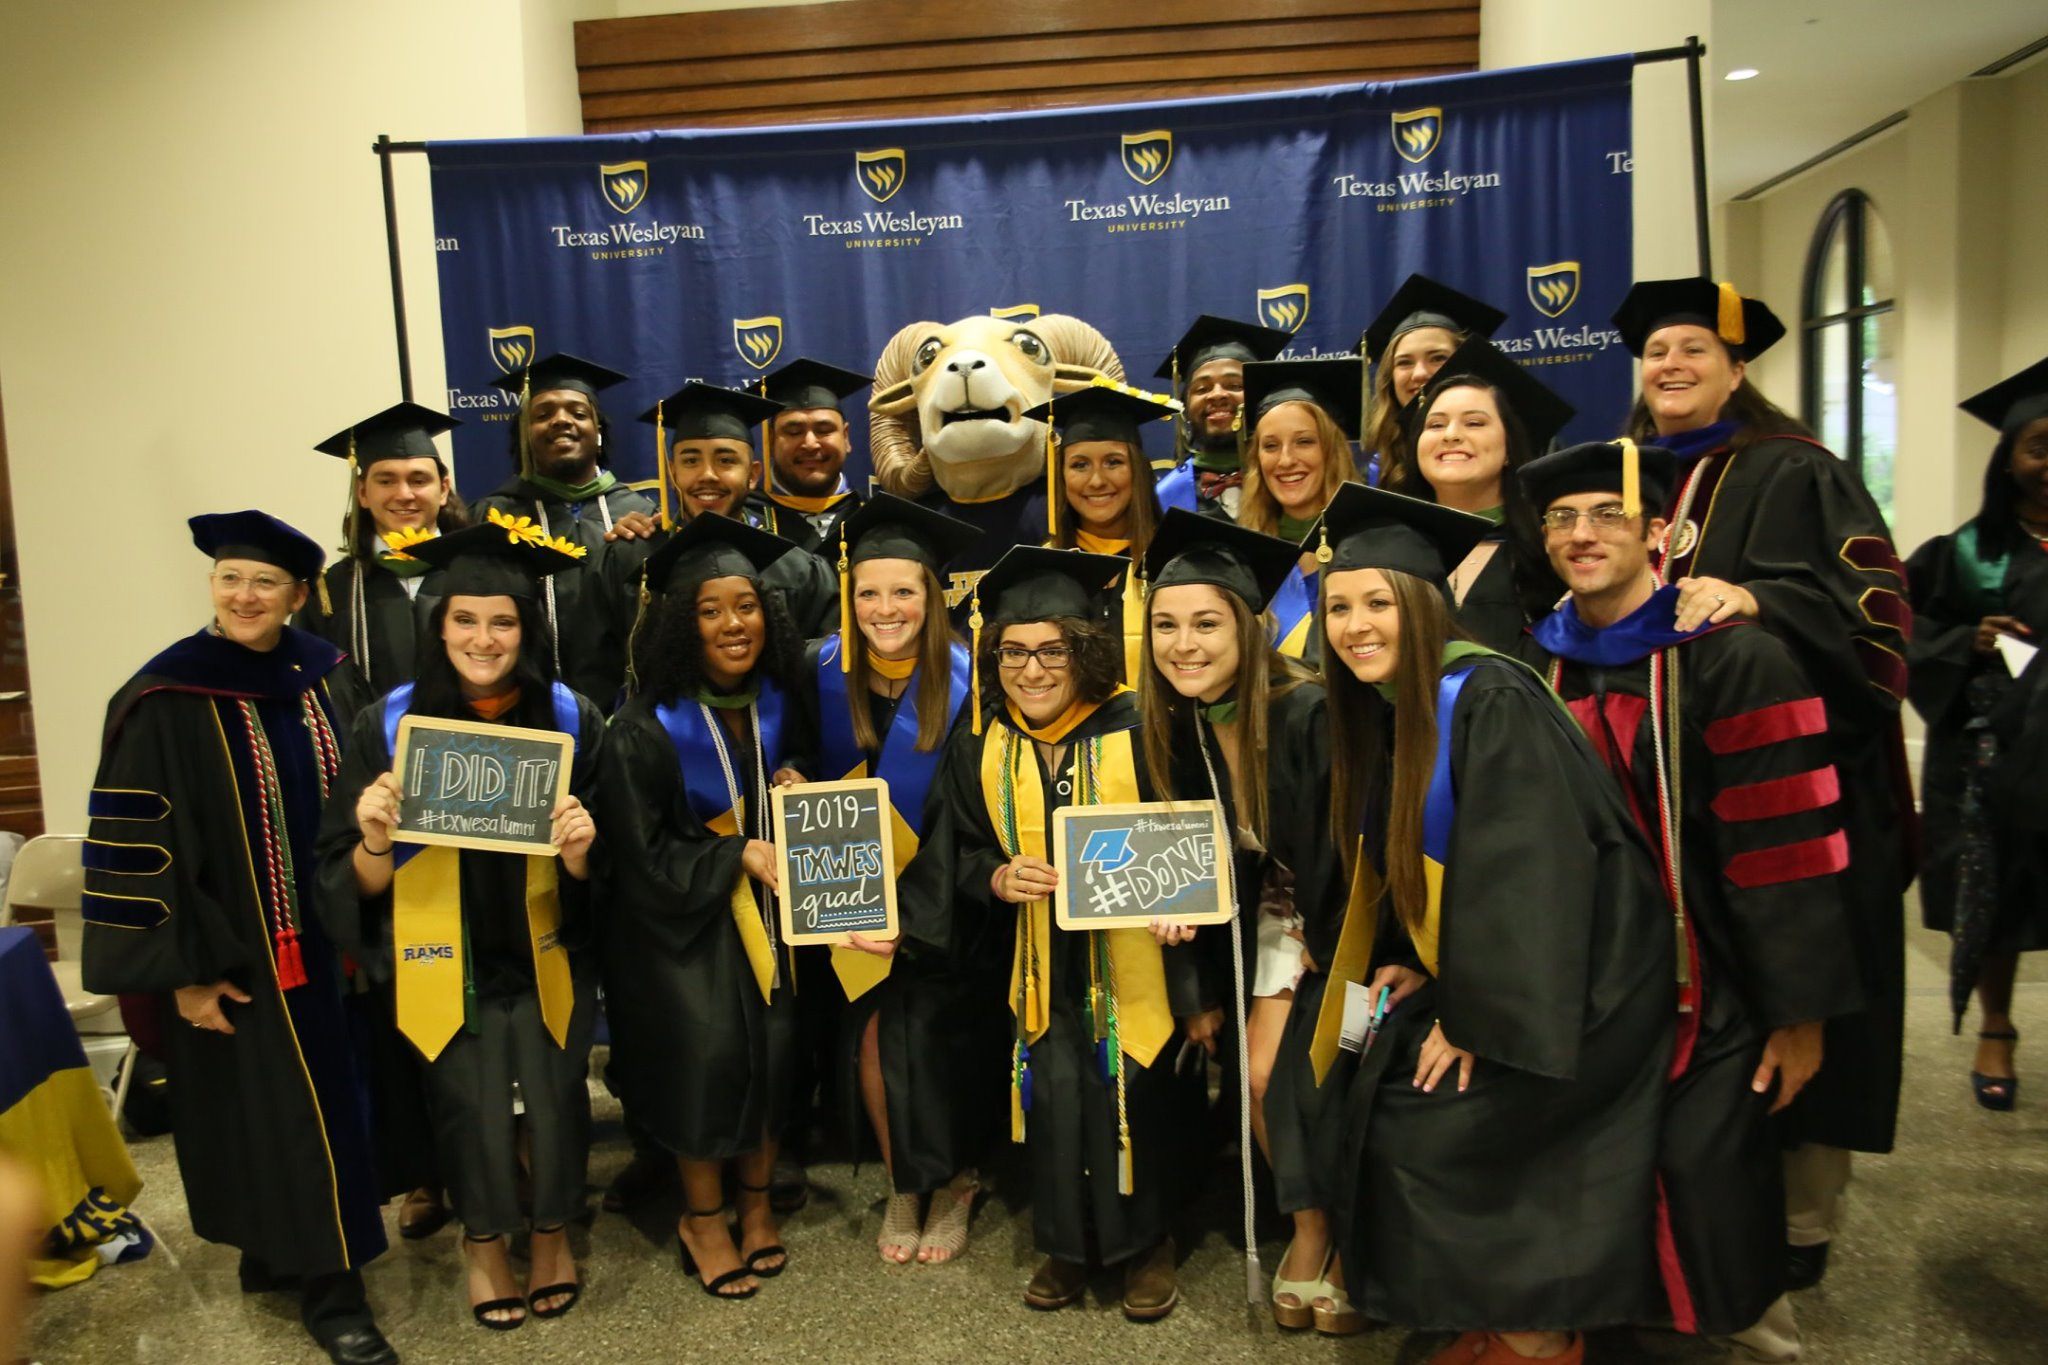 Photo of students taken at the Texas Wesleyan spring 2019